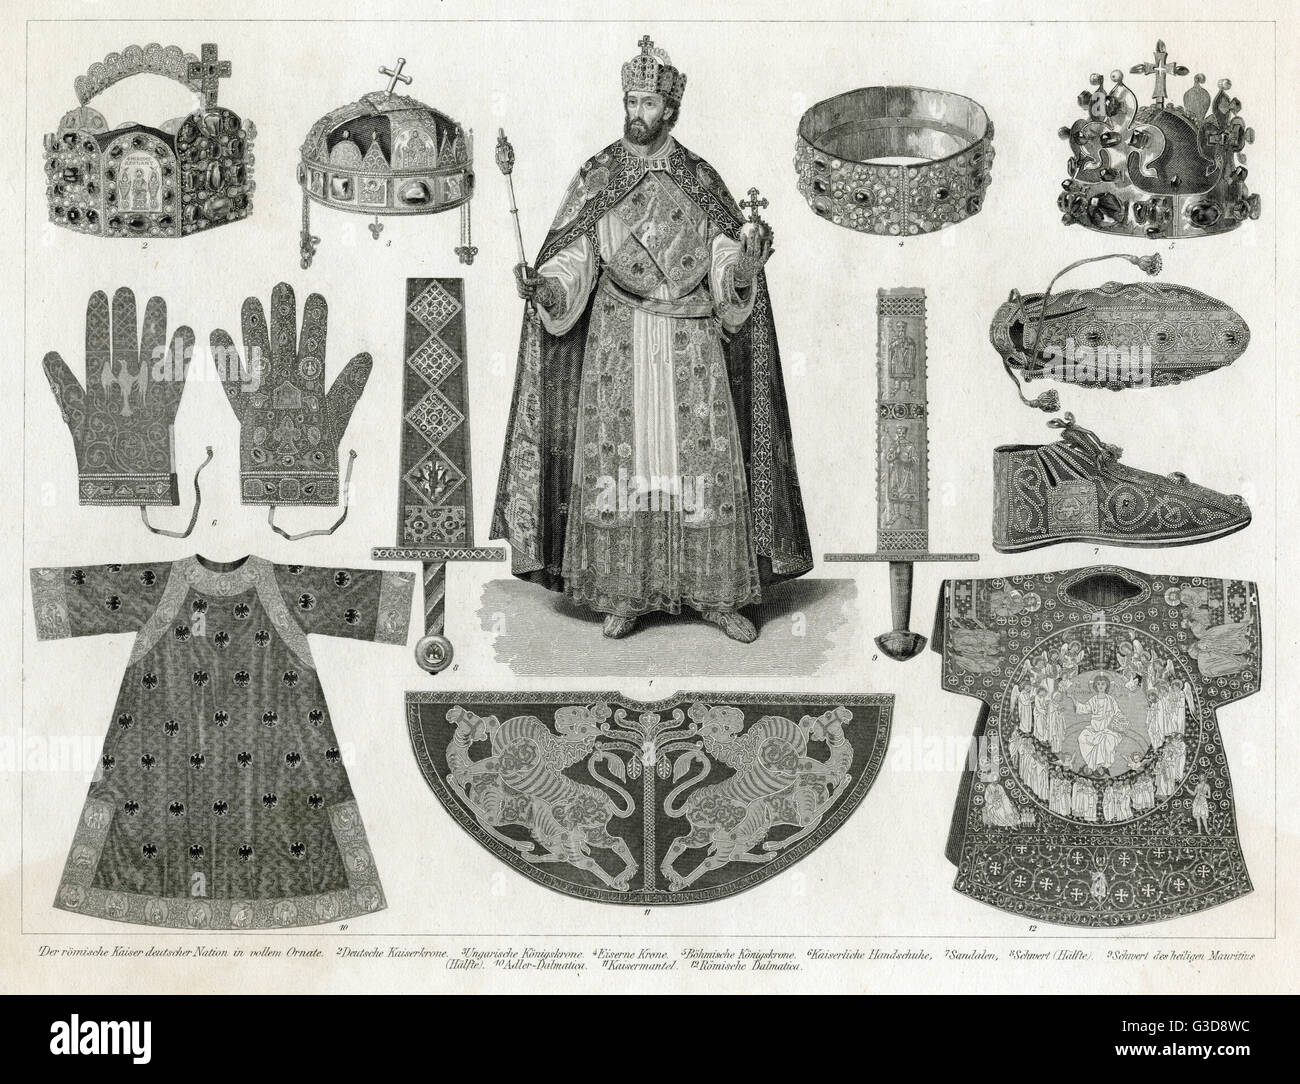 Holy Roman Emperor (possibly based on Ferdinand I or Maximilian II) in full regalia at the centre, surrounded by - Stock Image